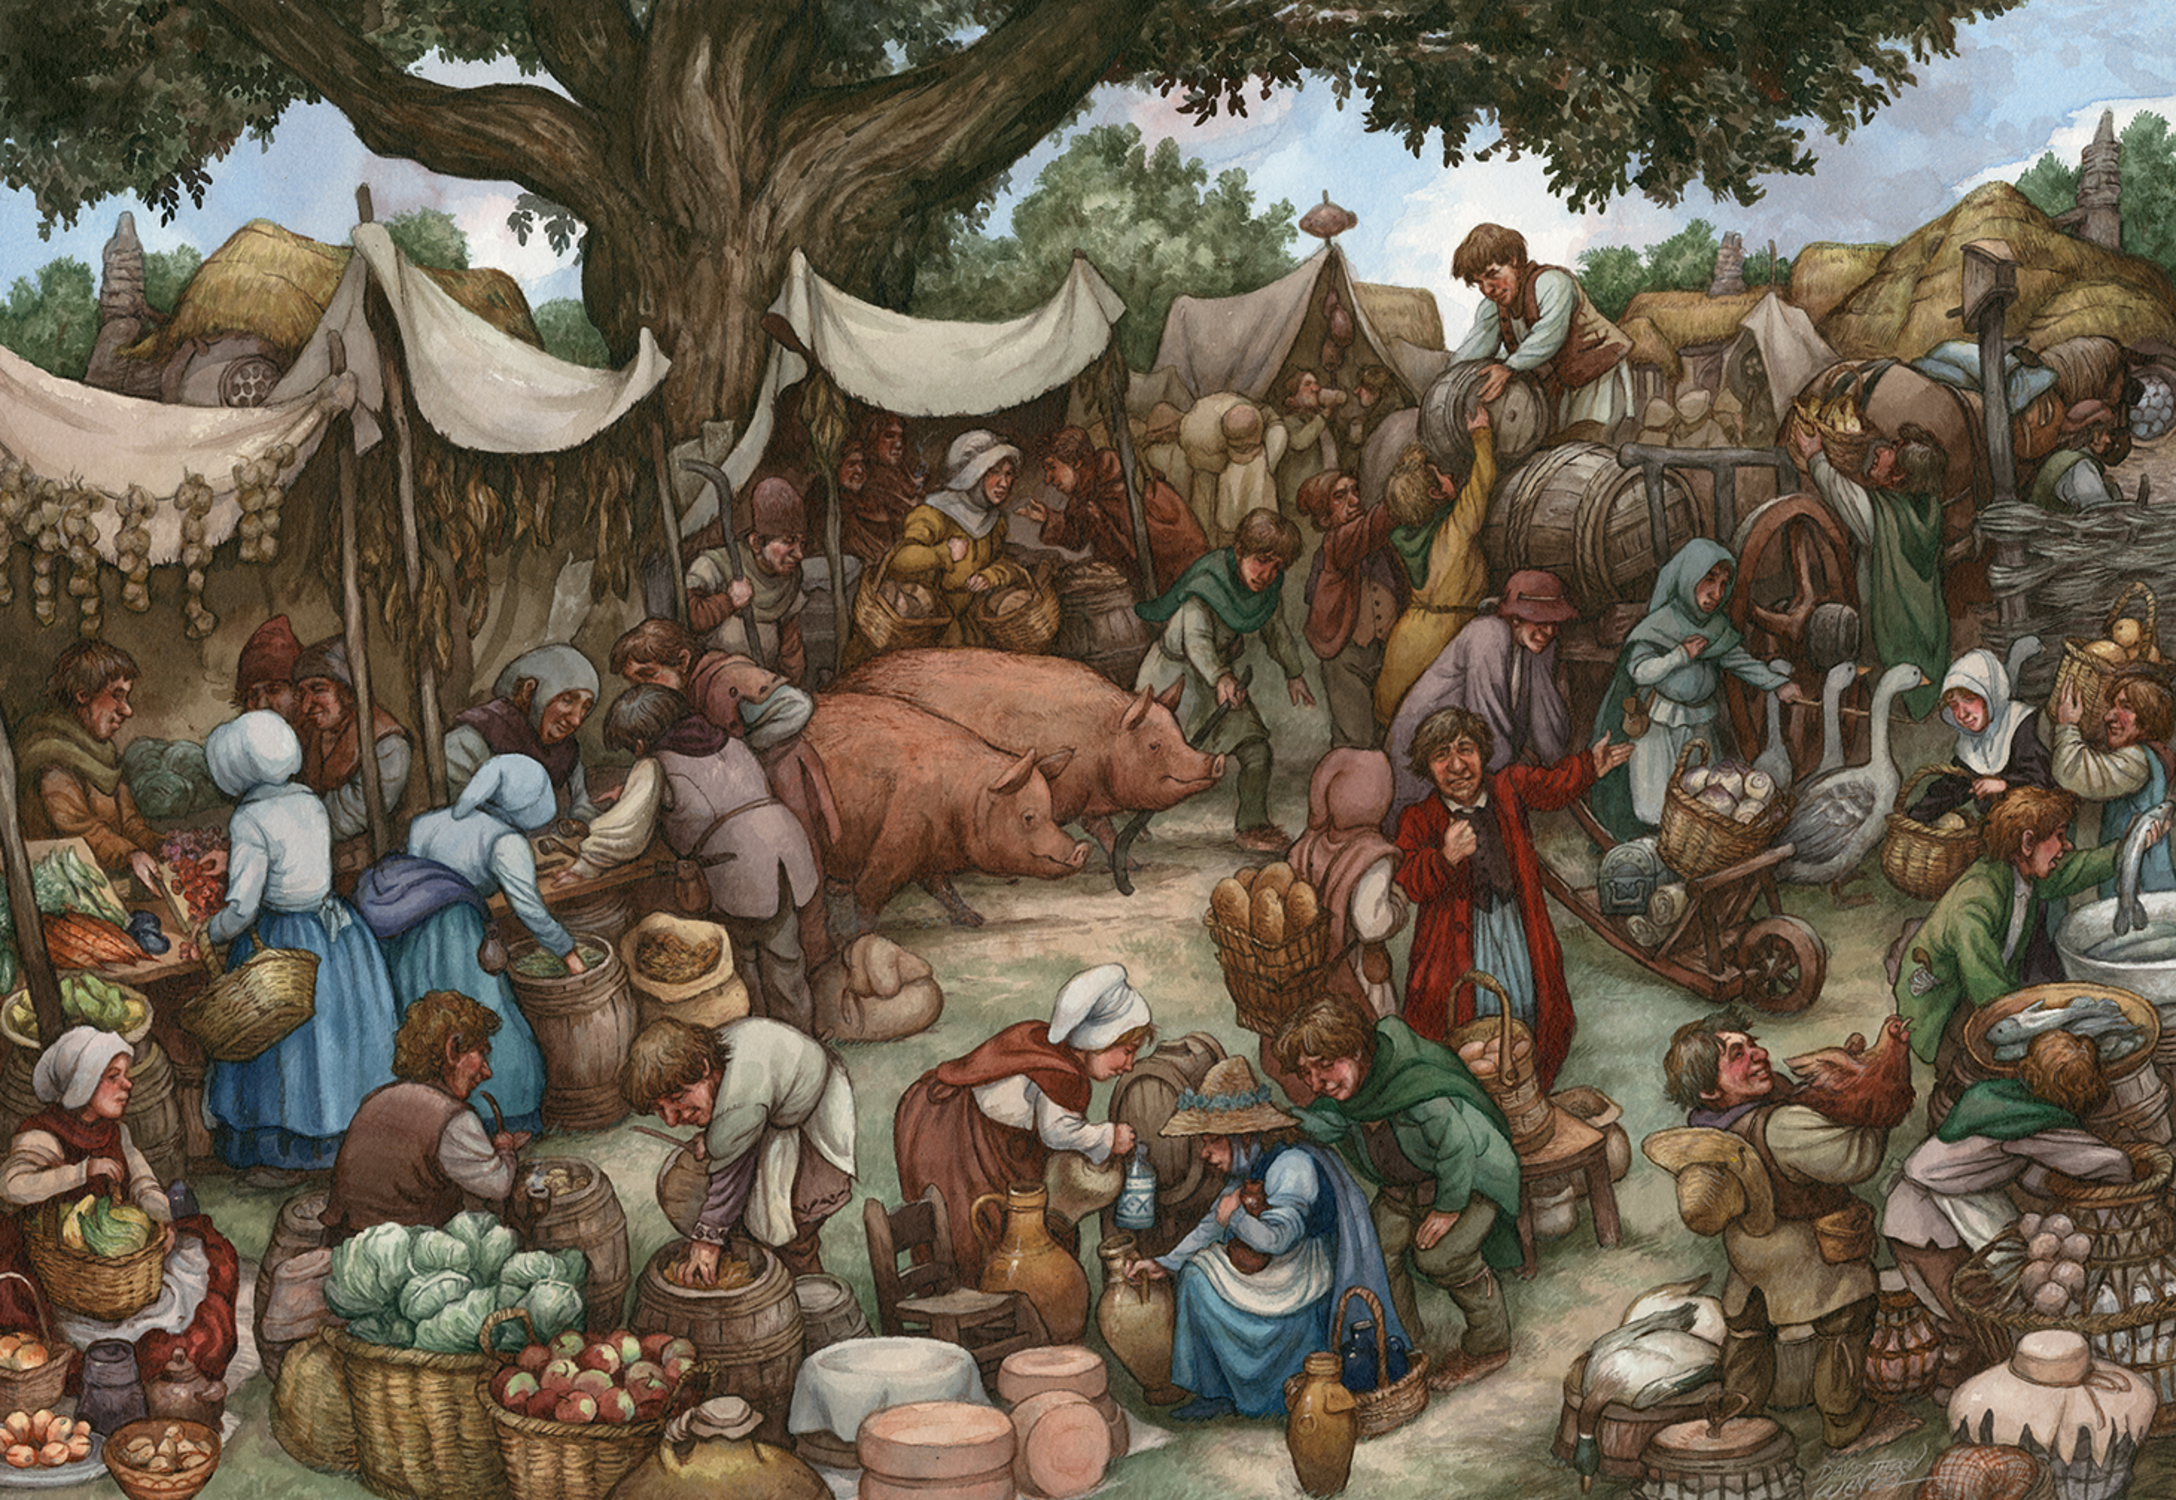 The Shire: East Farthing Market Artwork by David Wenzel